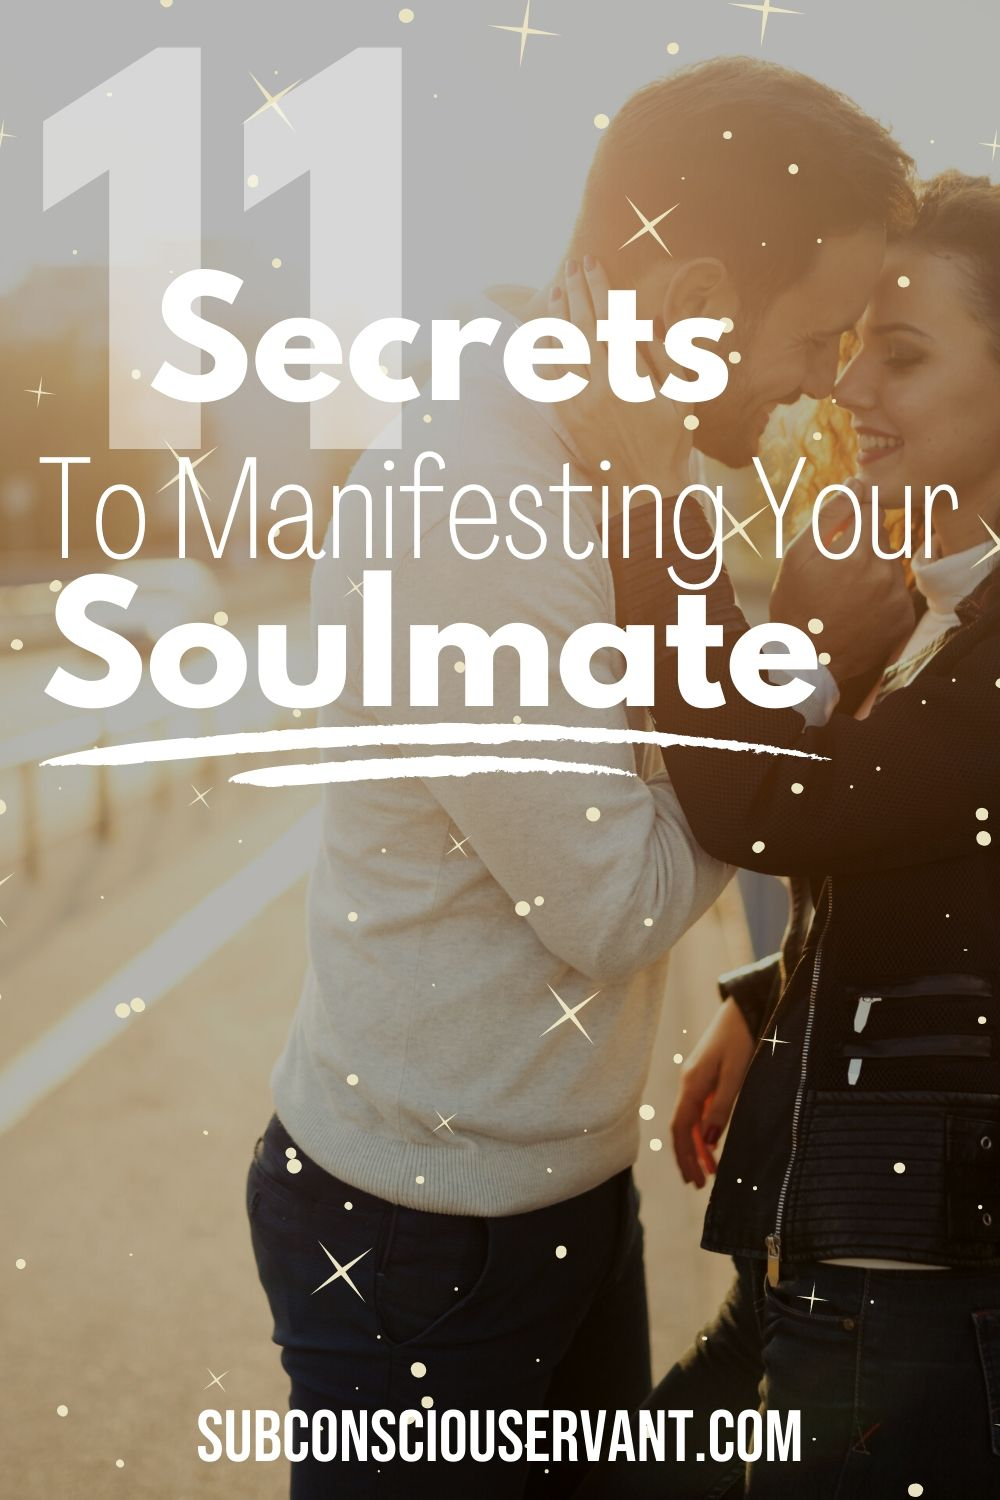 How To Manifest Your Soulmate (11 Must Know Secrets)